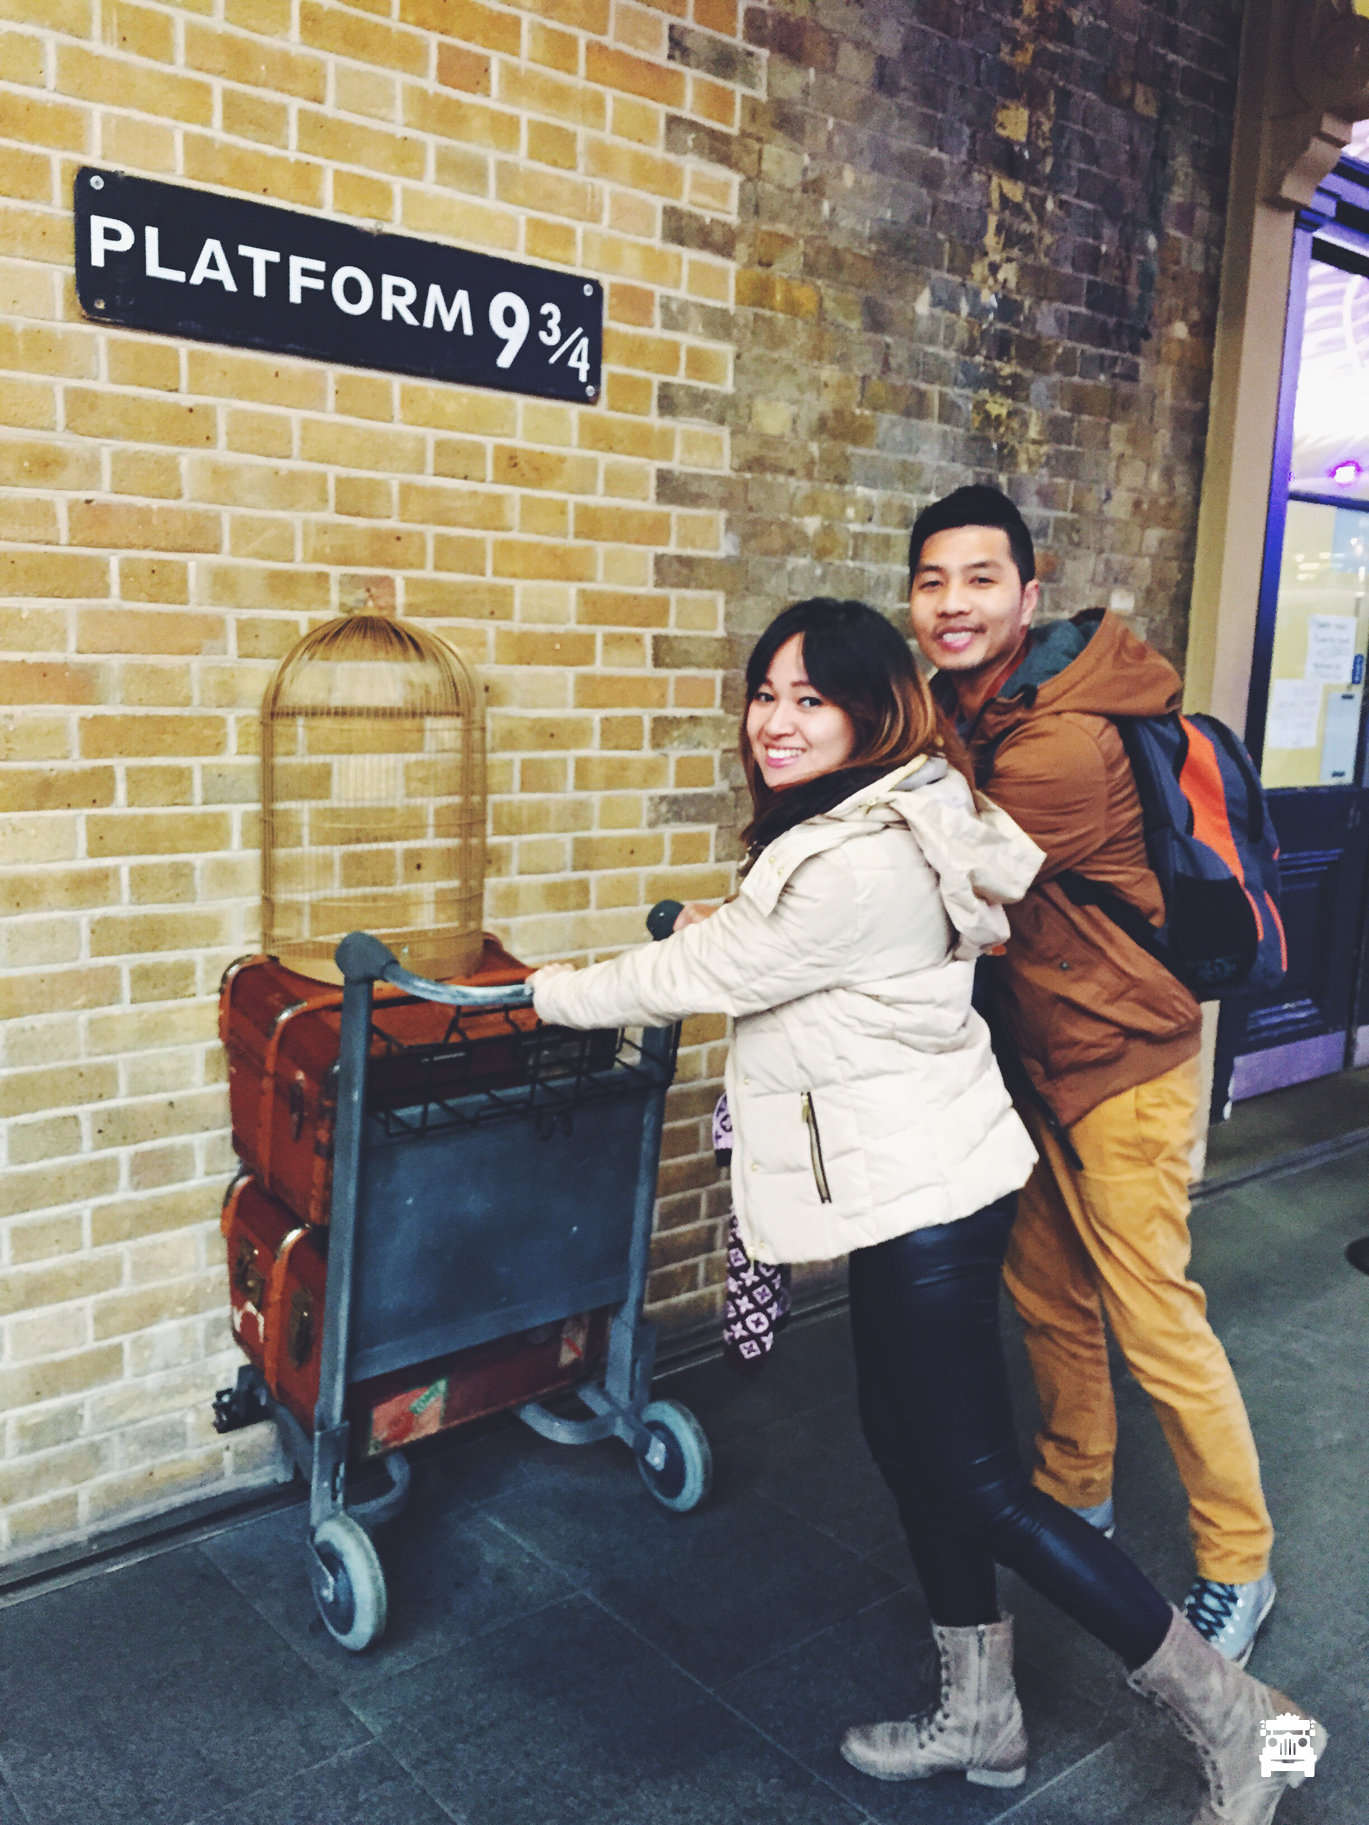 Harry and Hermione off to Hogwarts ;)